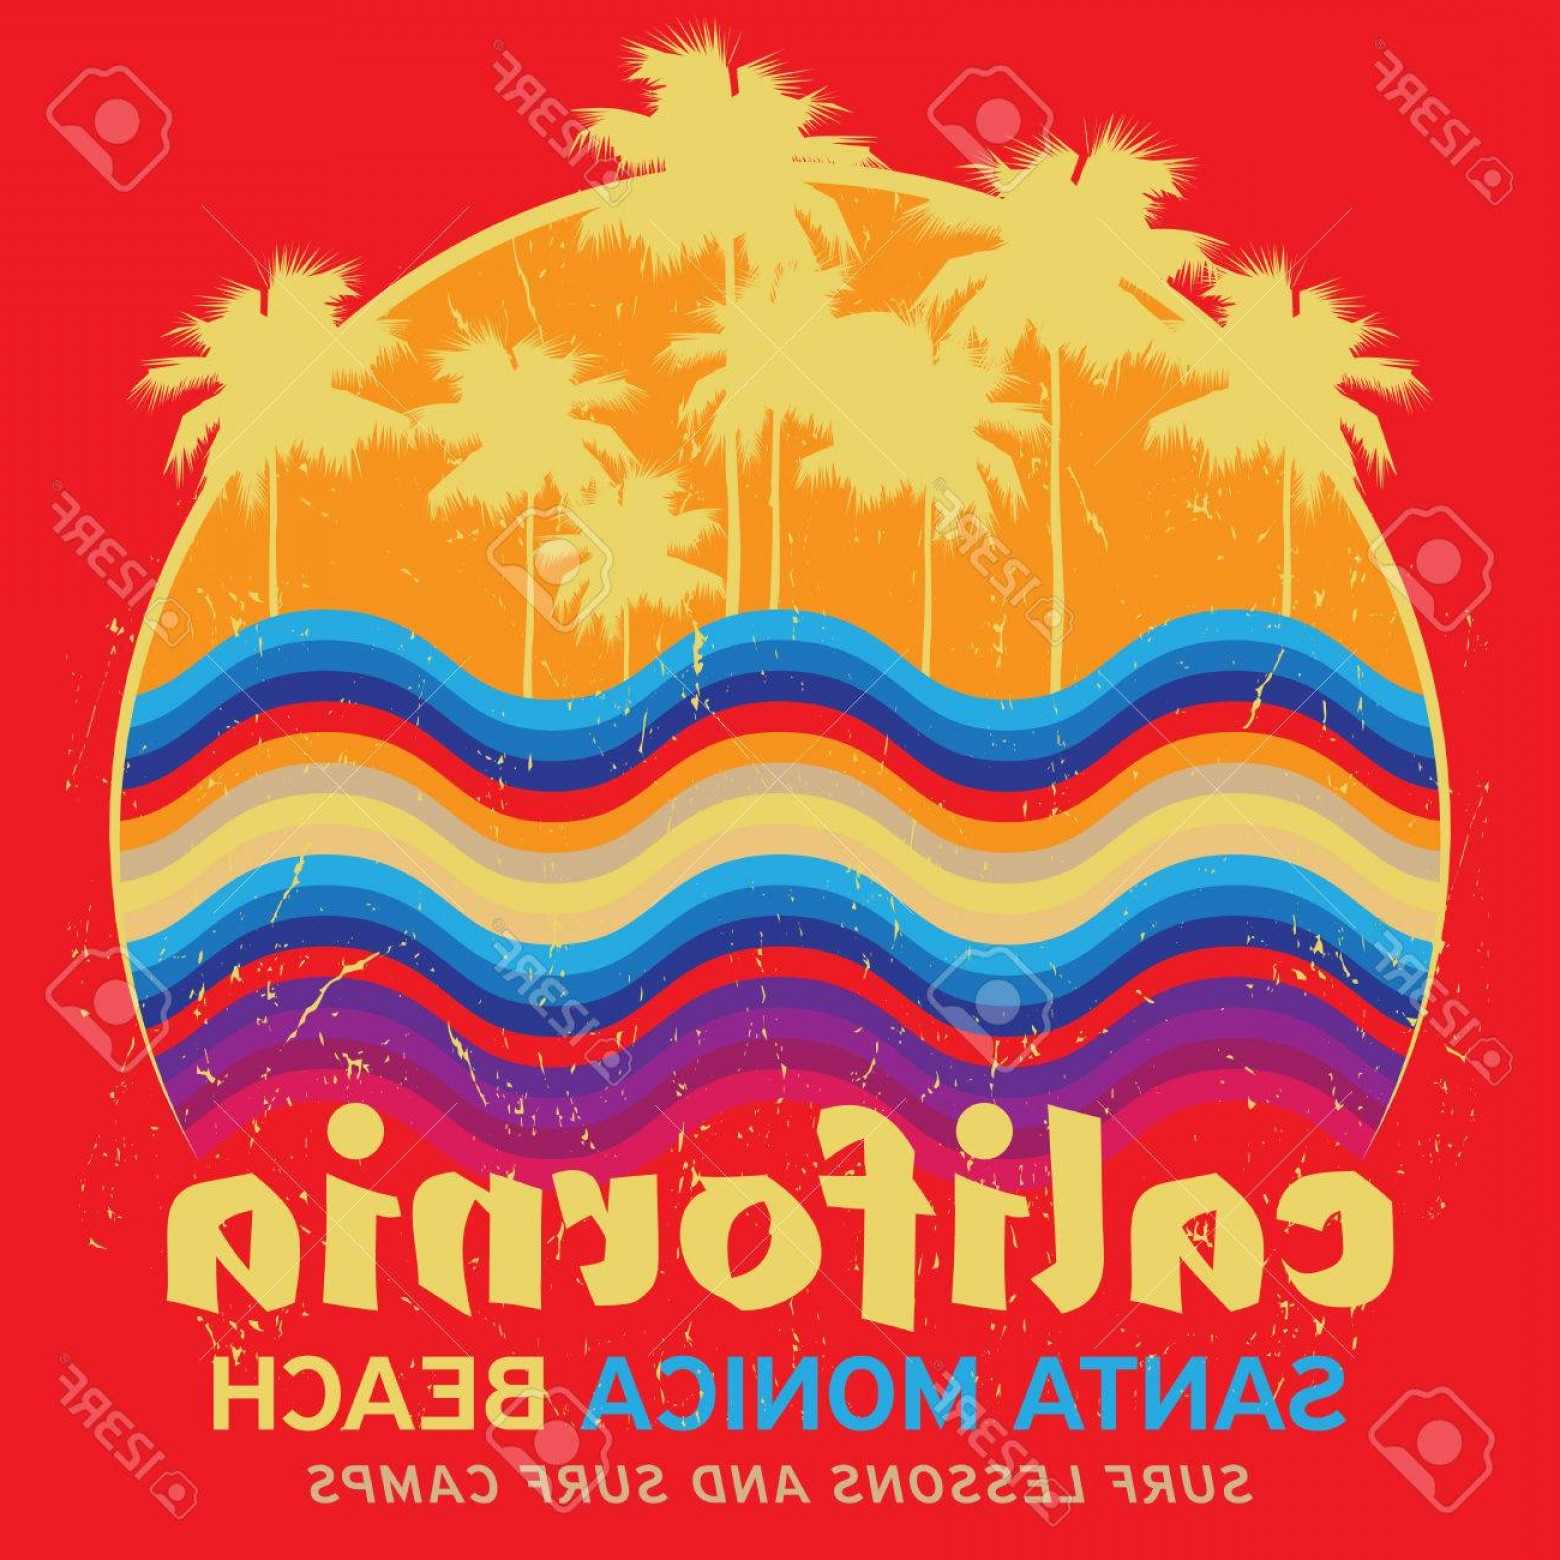 1560x1560 Photostock Vector Theme Of Surfing With Text California Santa